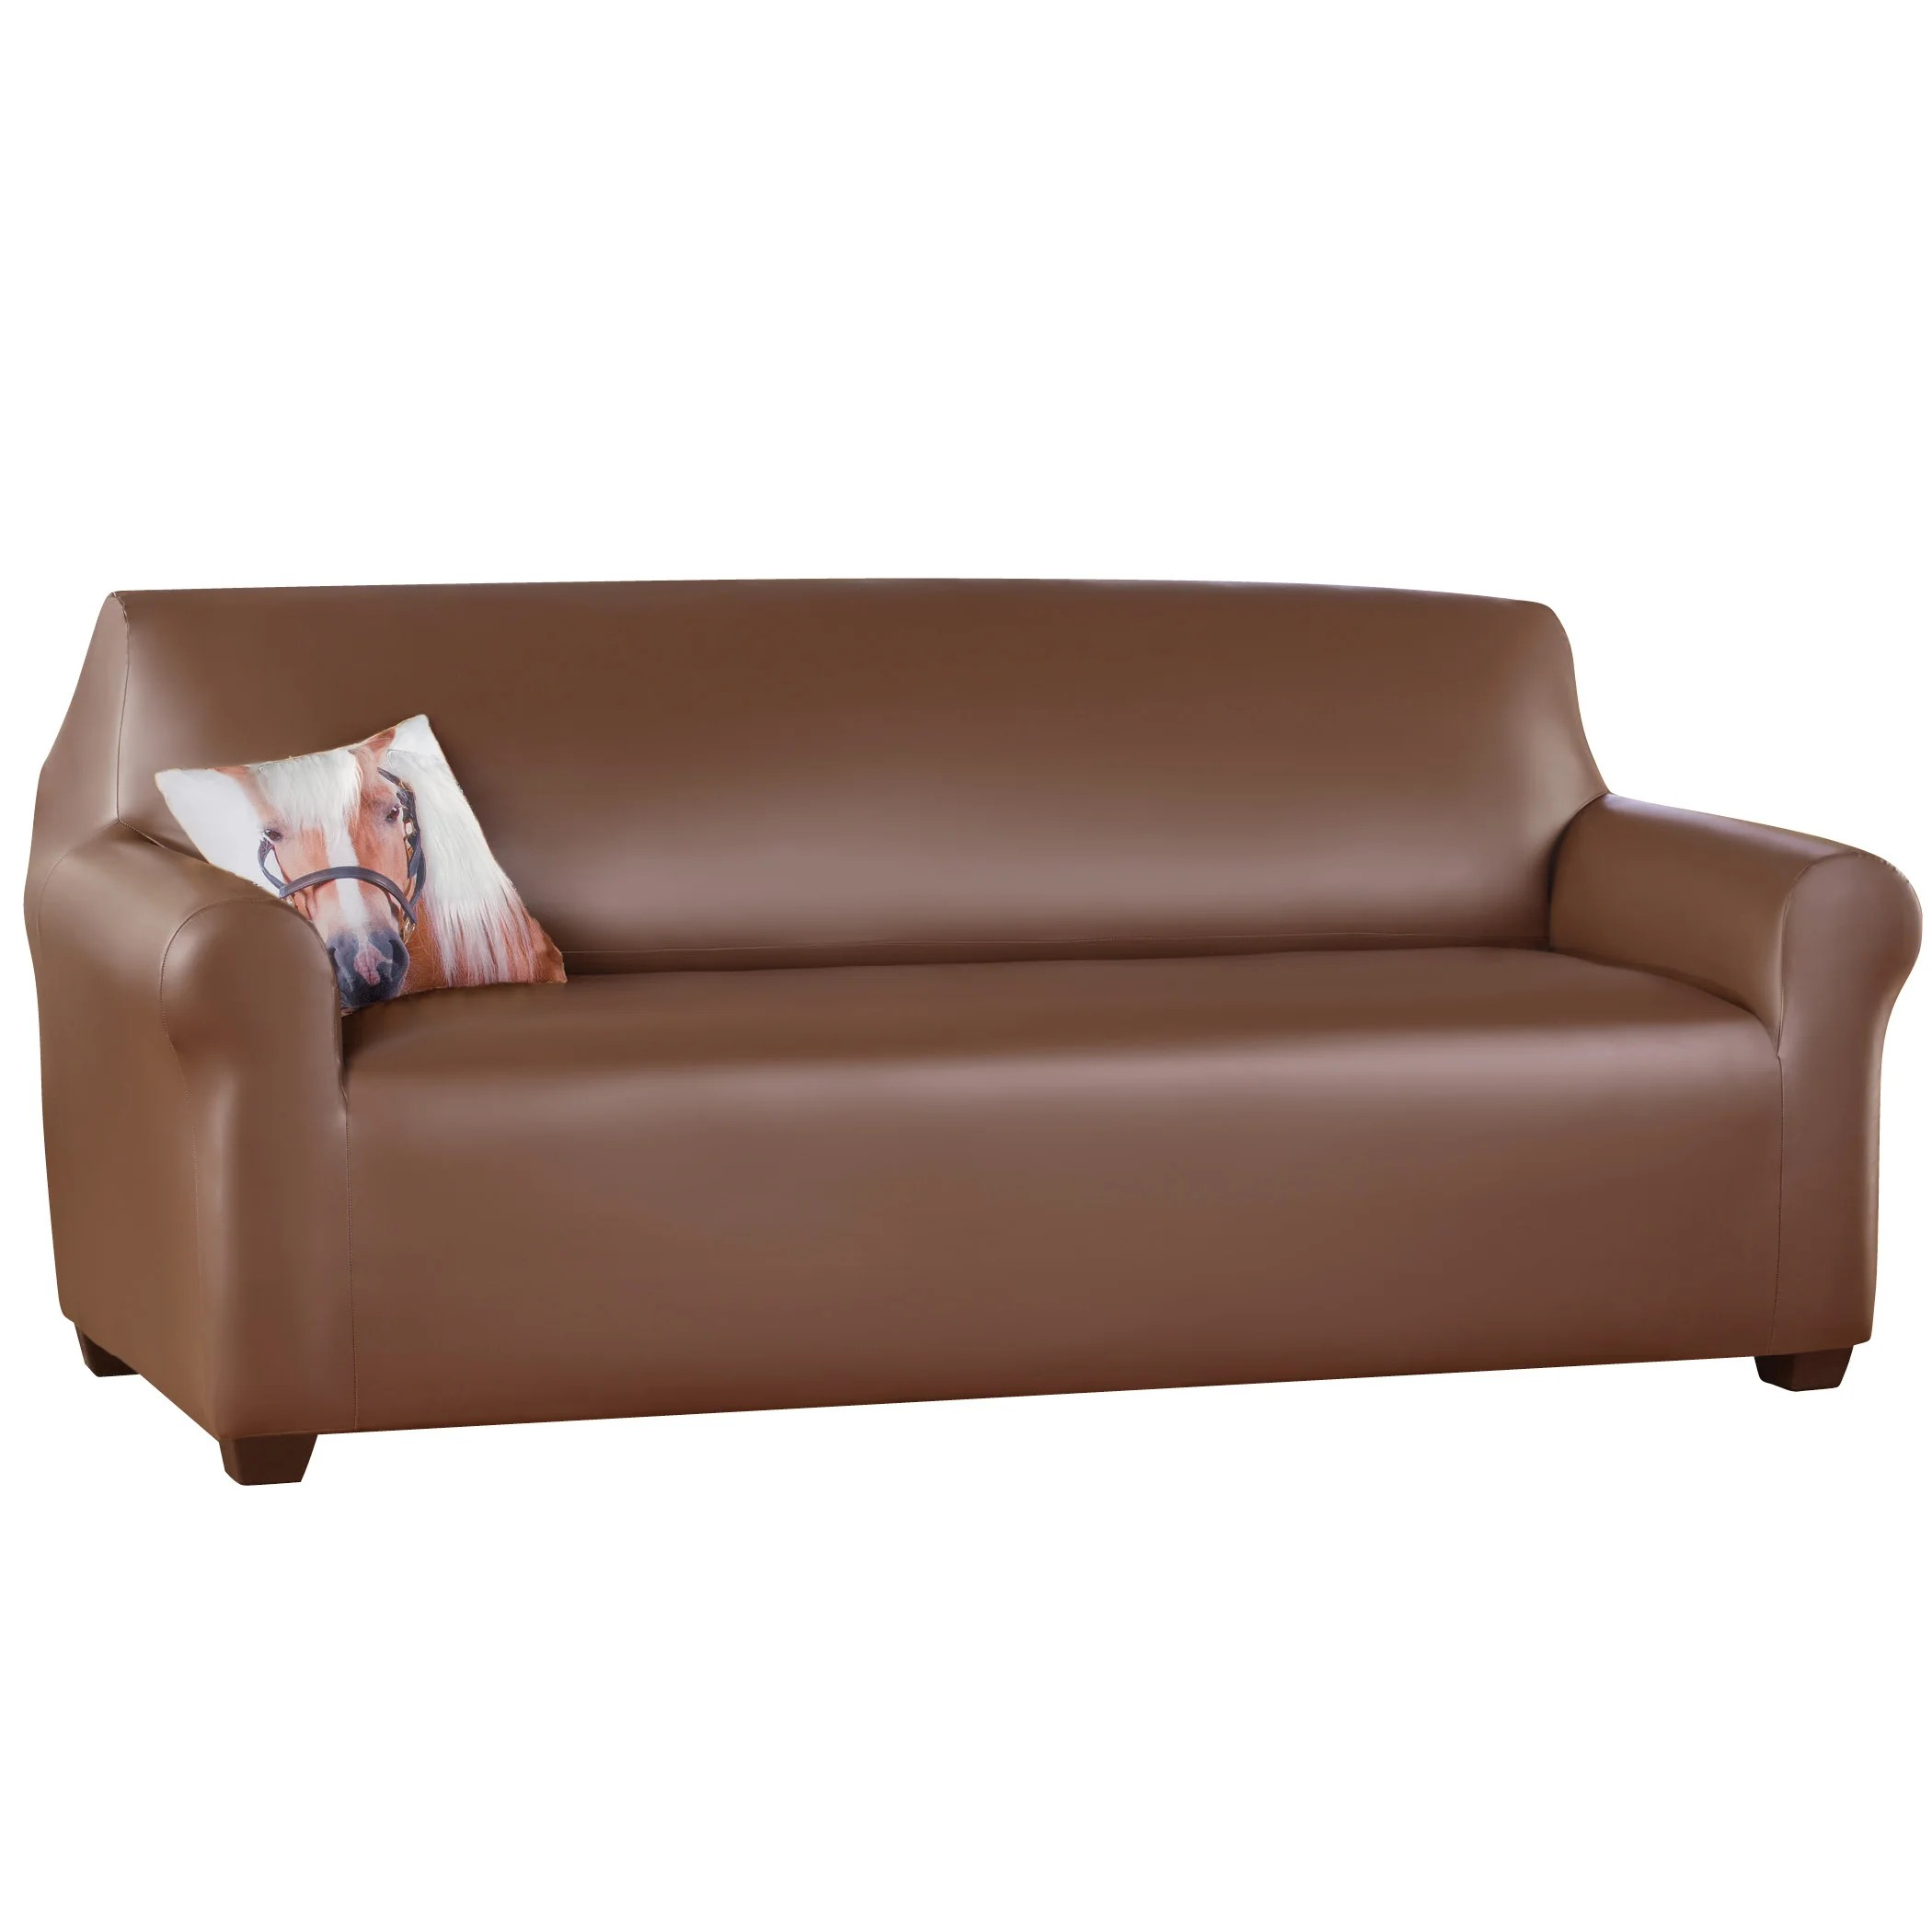 Red Barrel Studio Faux Leather T Cushion Sofa Slipcover Wayfair